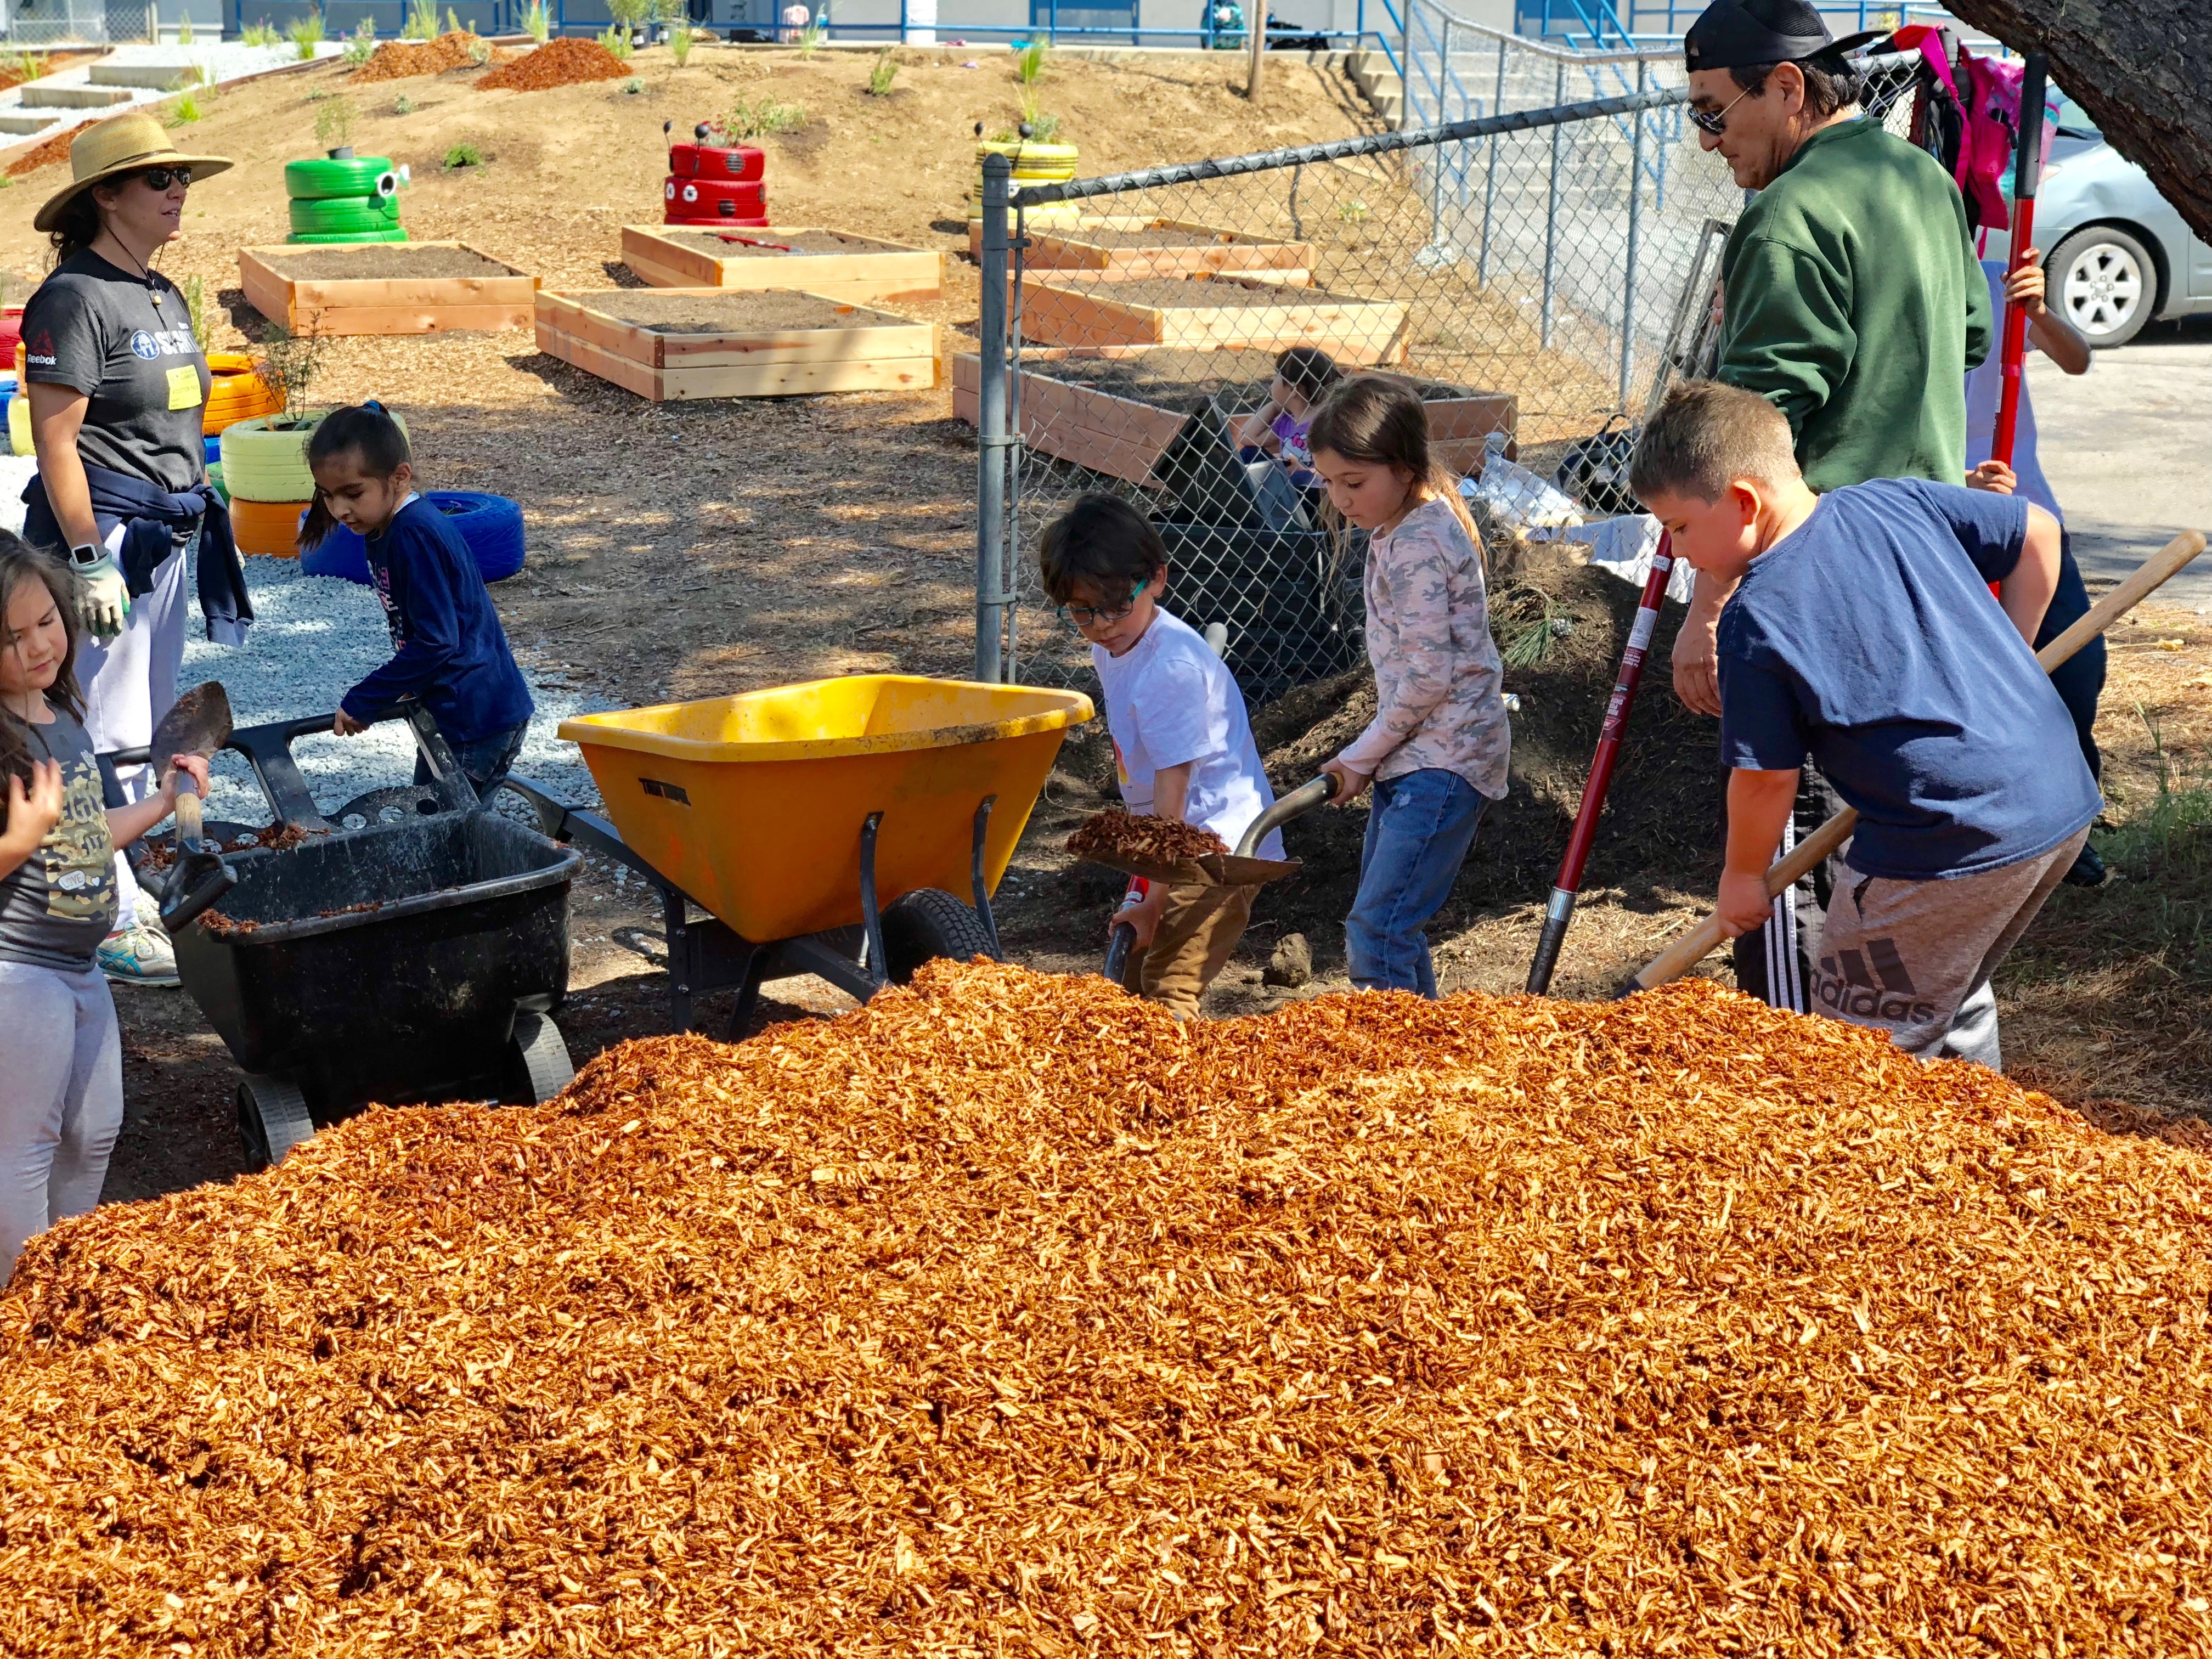 Children shoveling mulch